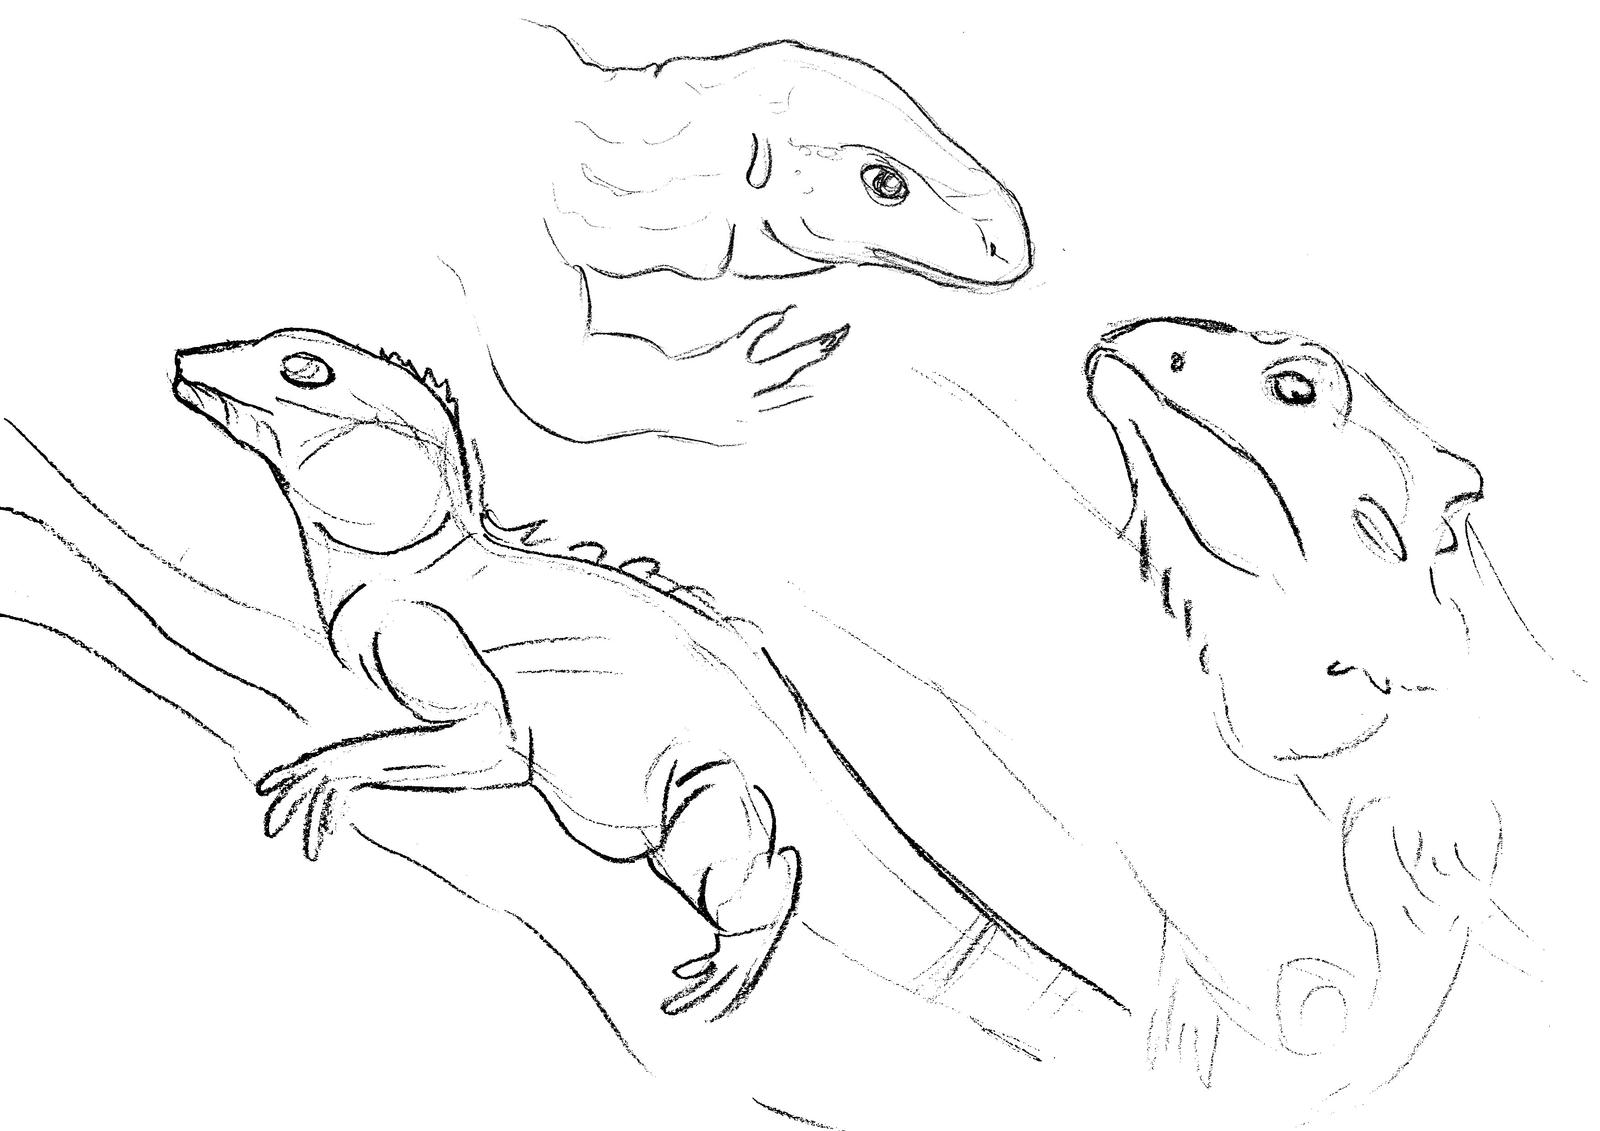 Line Drawing Lizard : Lizard sketch by adele waldrom on deviantart